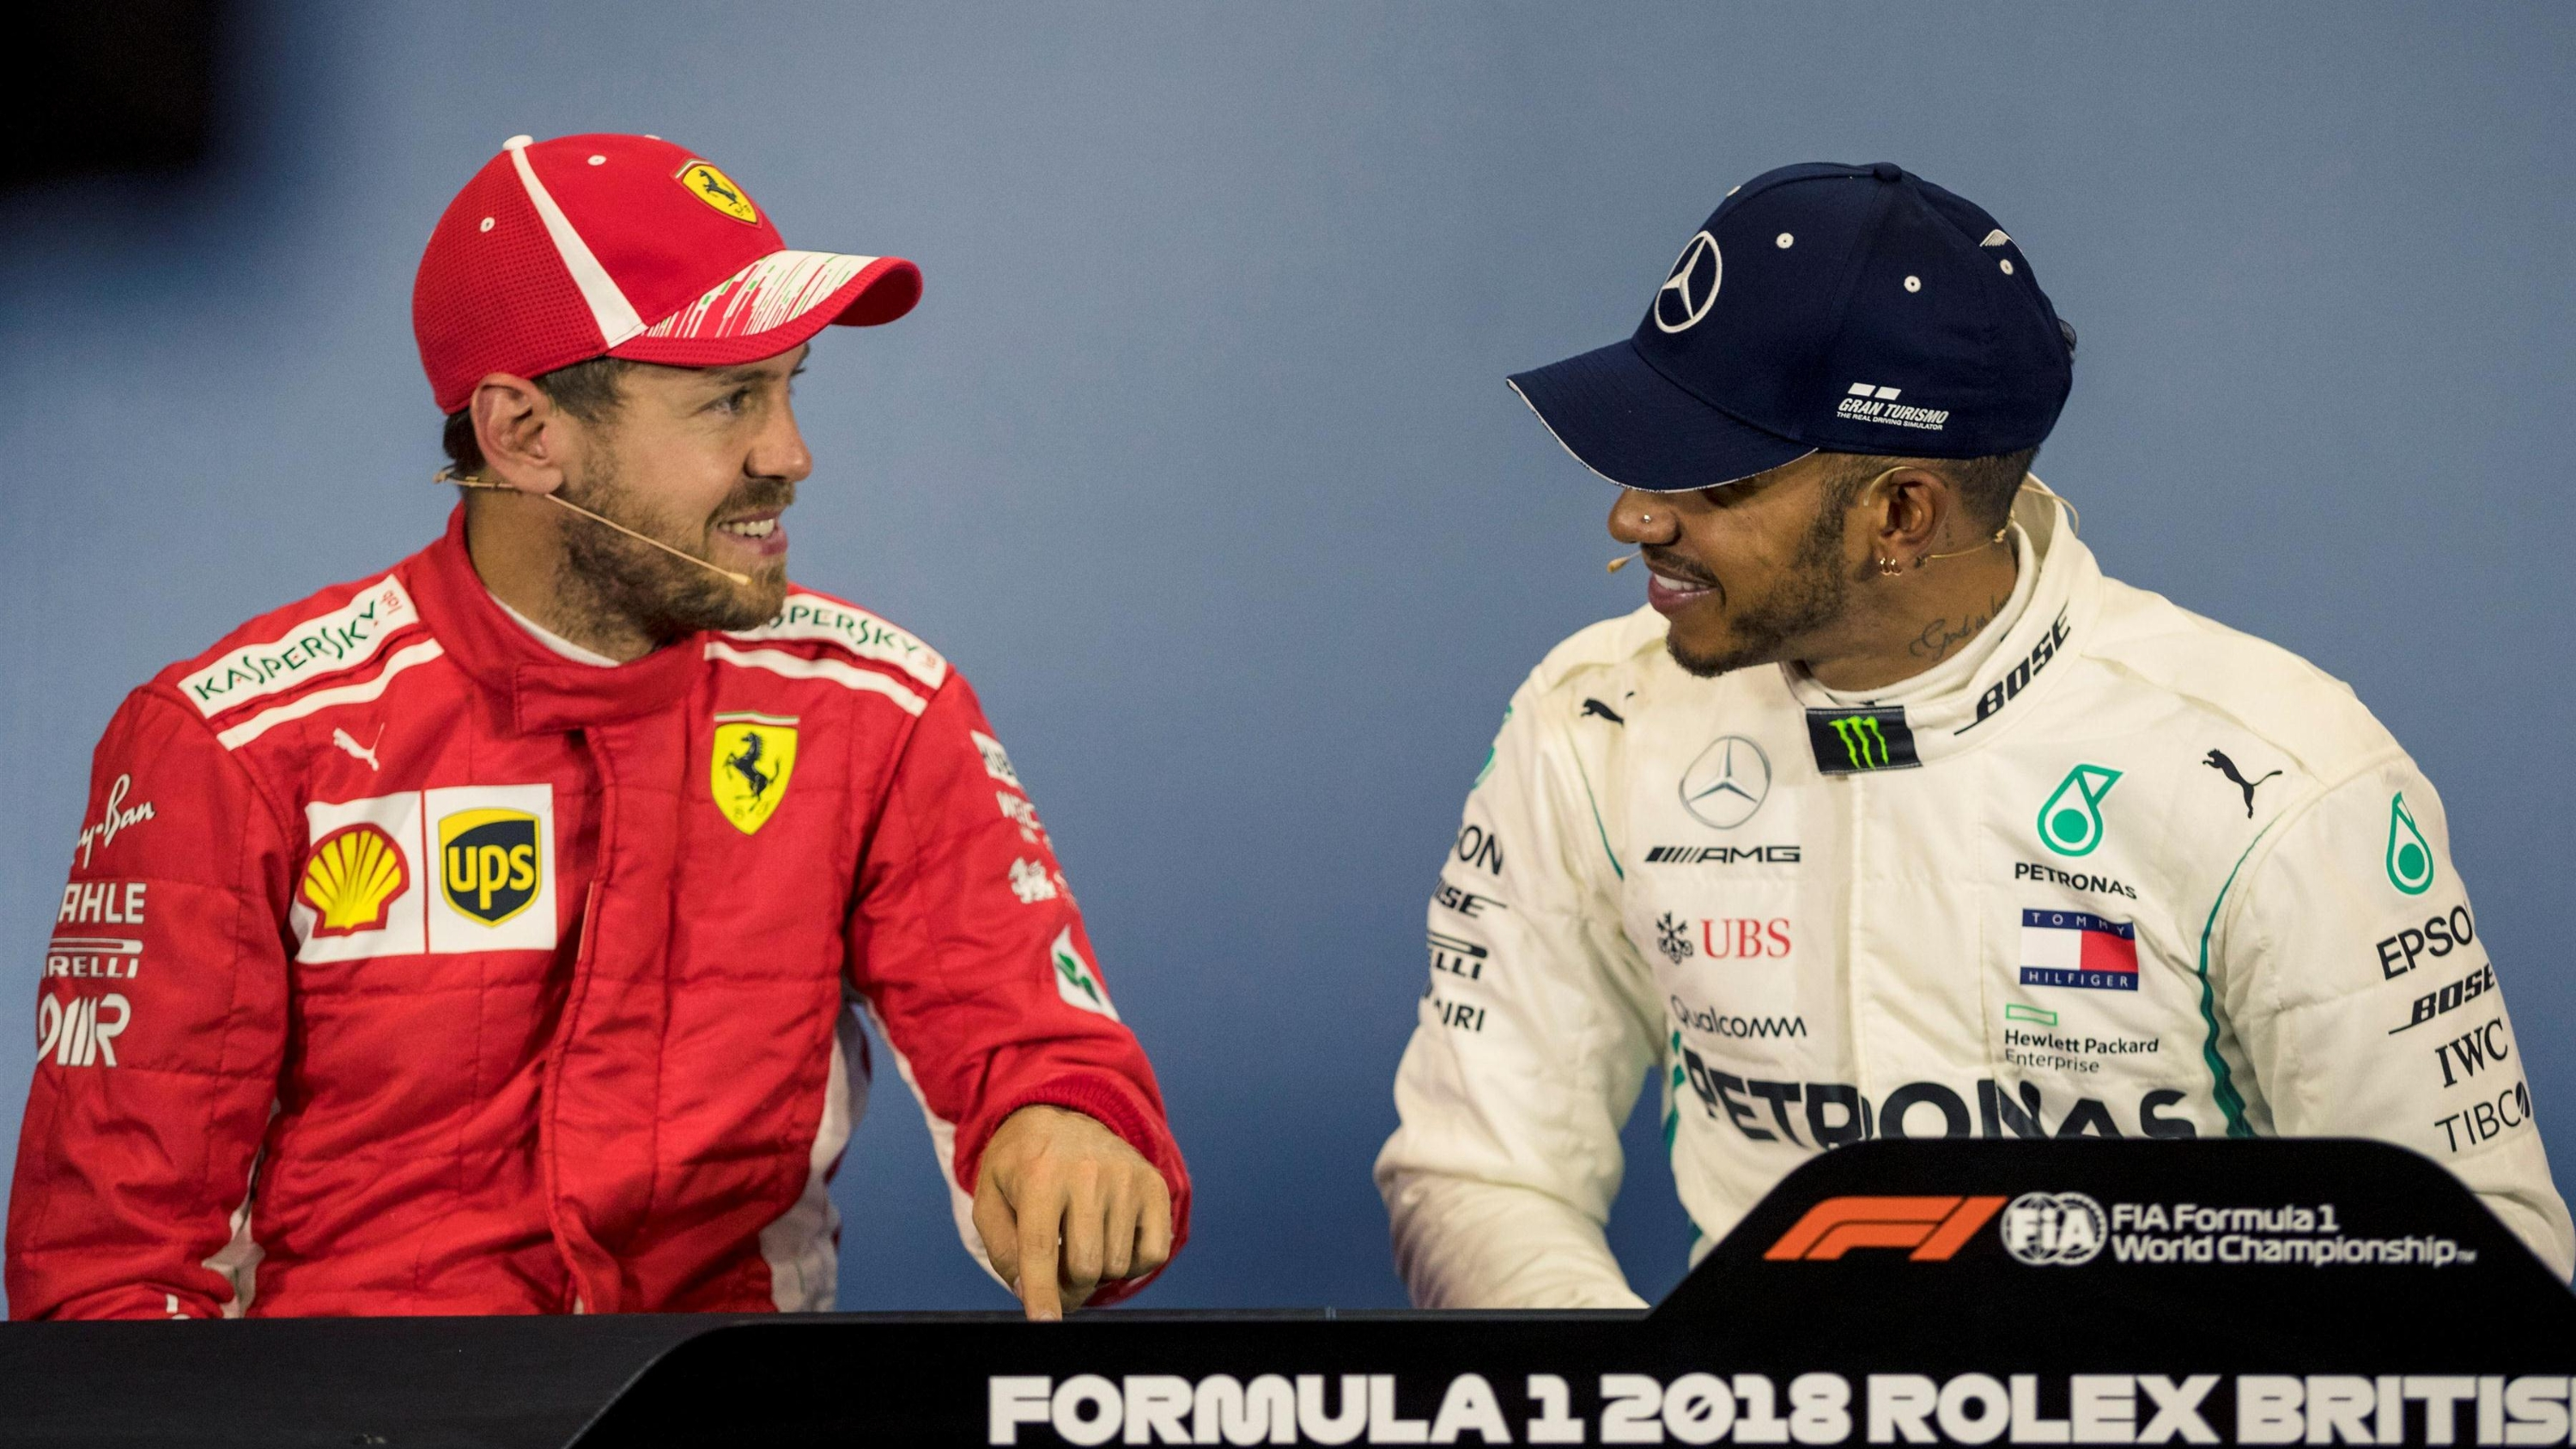 Hamilton vows to move on after Raikkonen apology